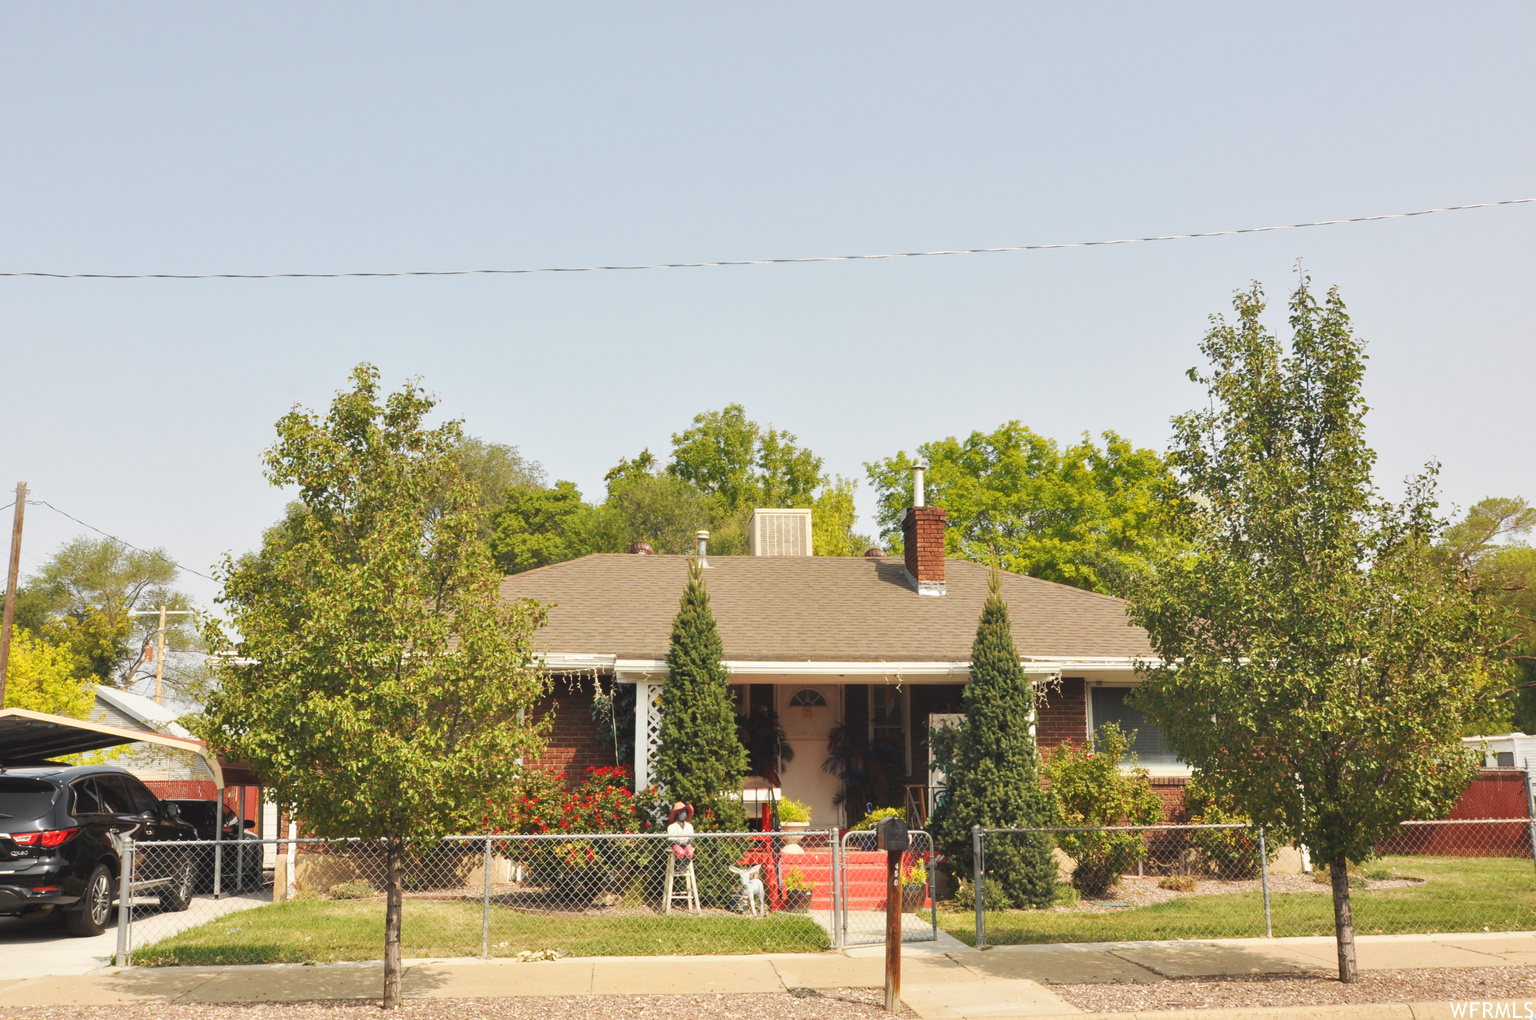 450 6TH ST, Ogden UT 84404